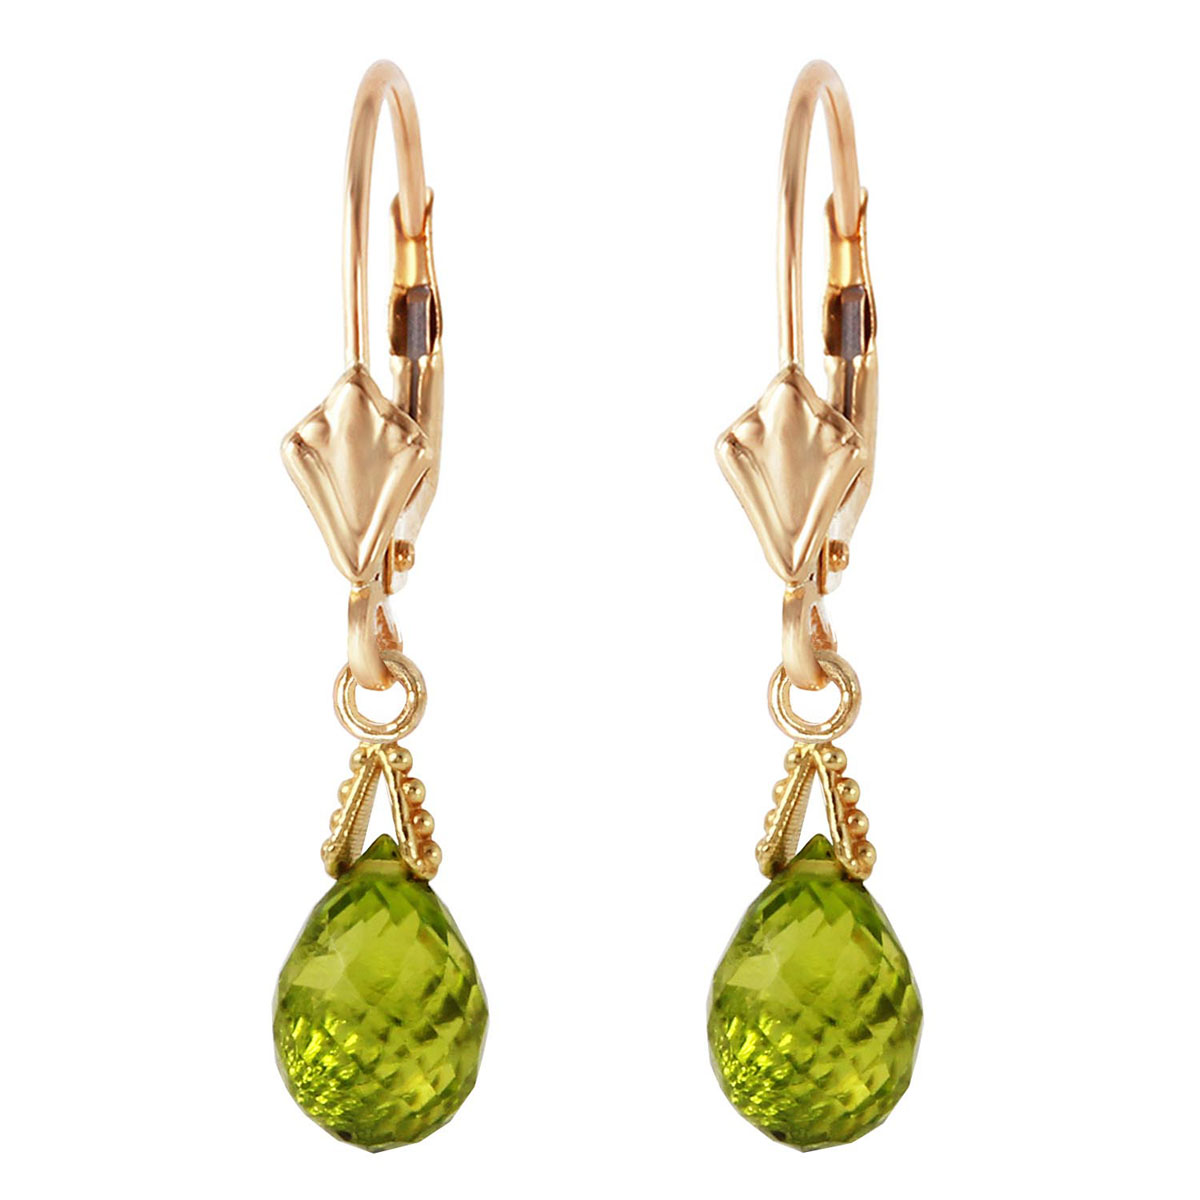 Peridot Droplet Earrings 4.5 ctw in 9ct Gold